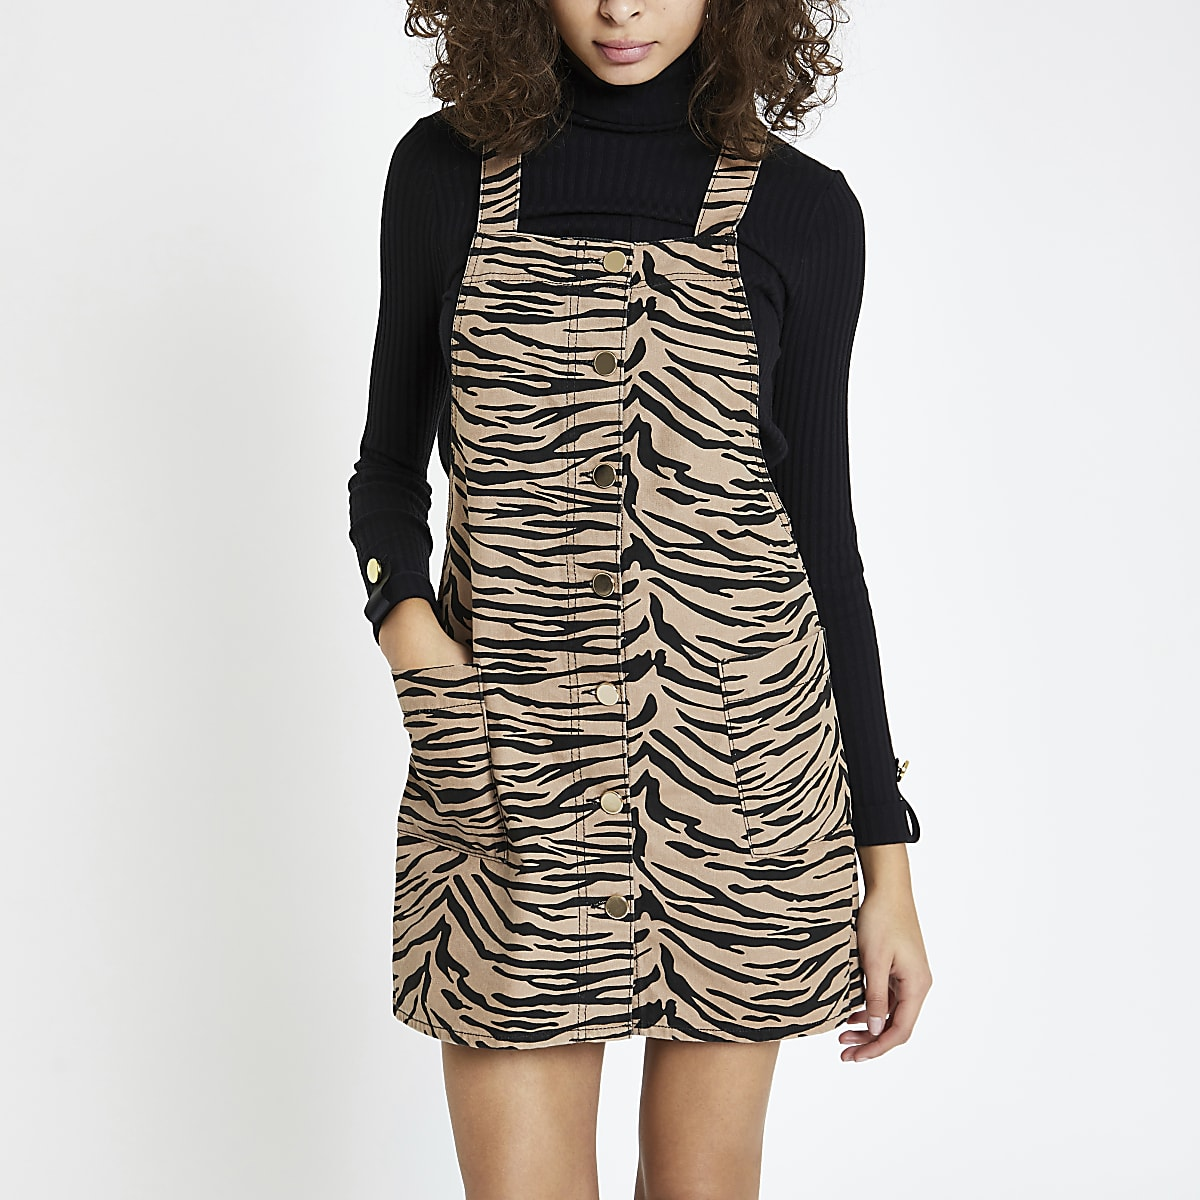 Brown zebra print dungaree dress